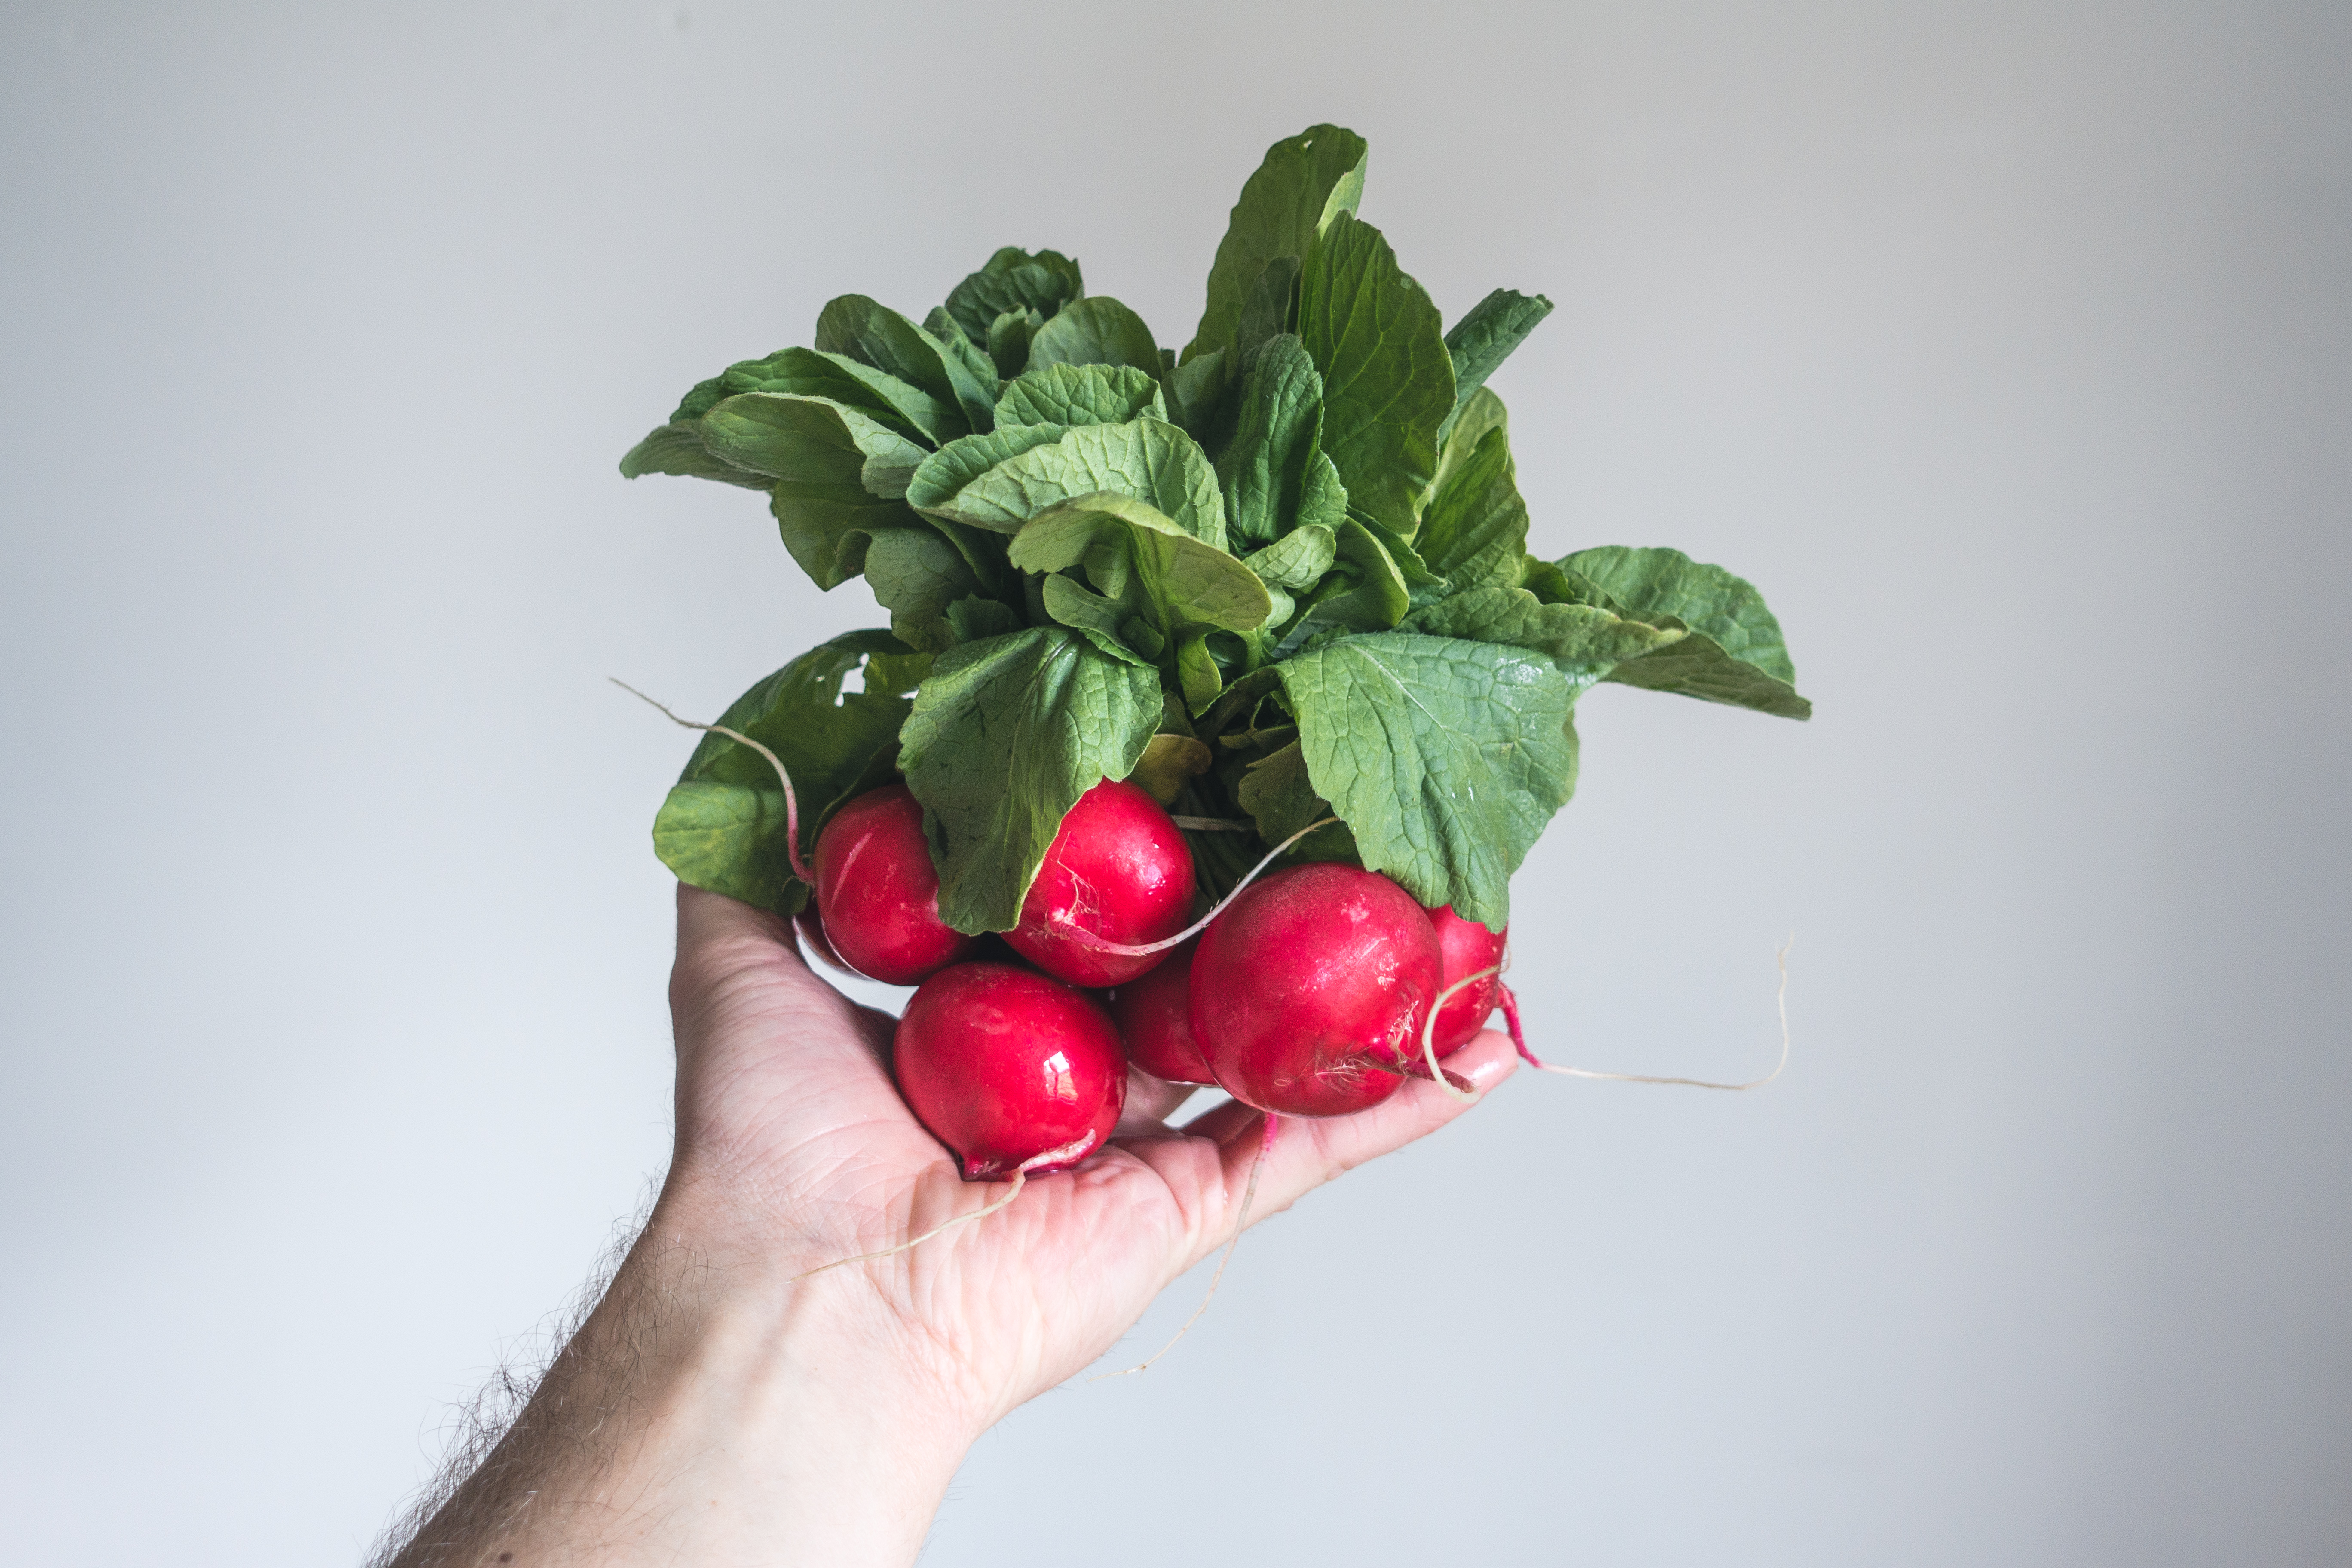 Holding fresh radishes in hand